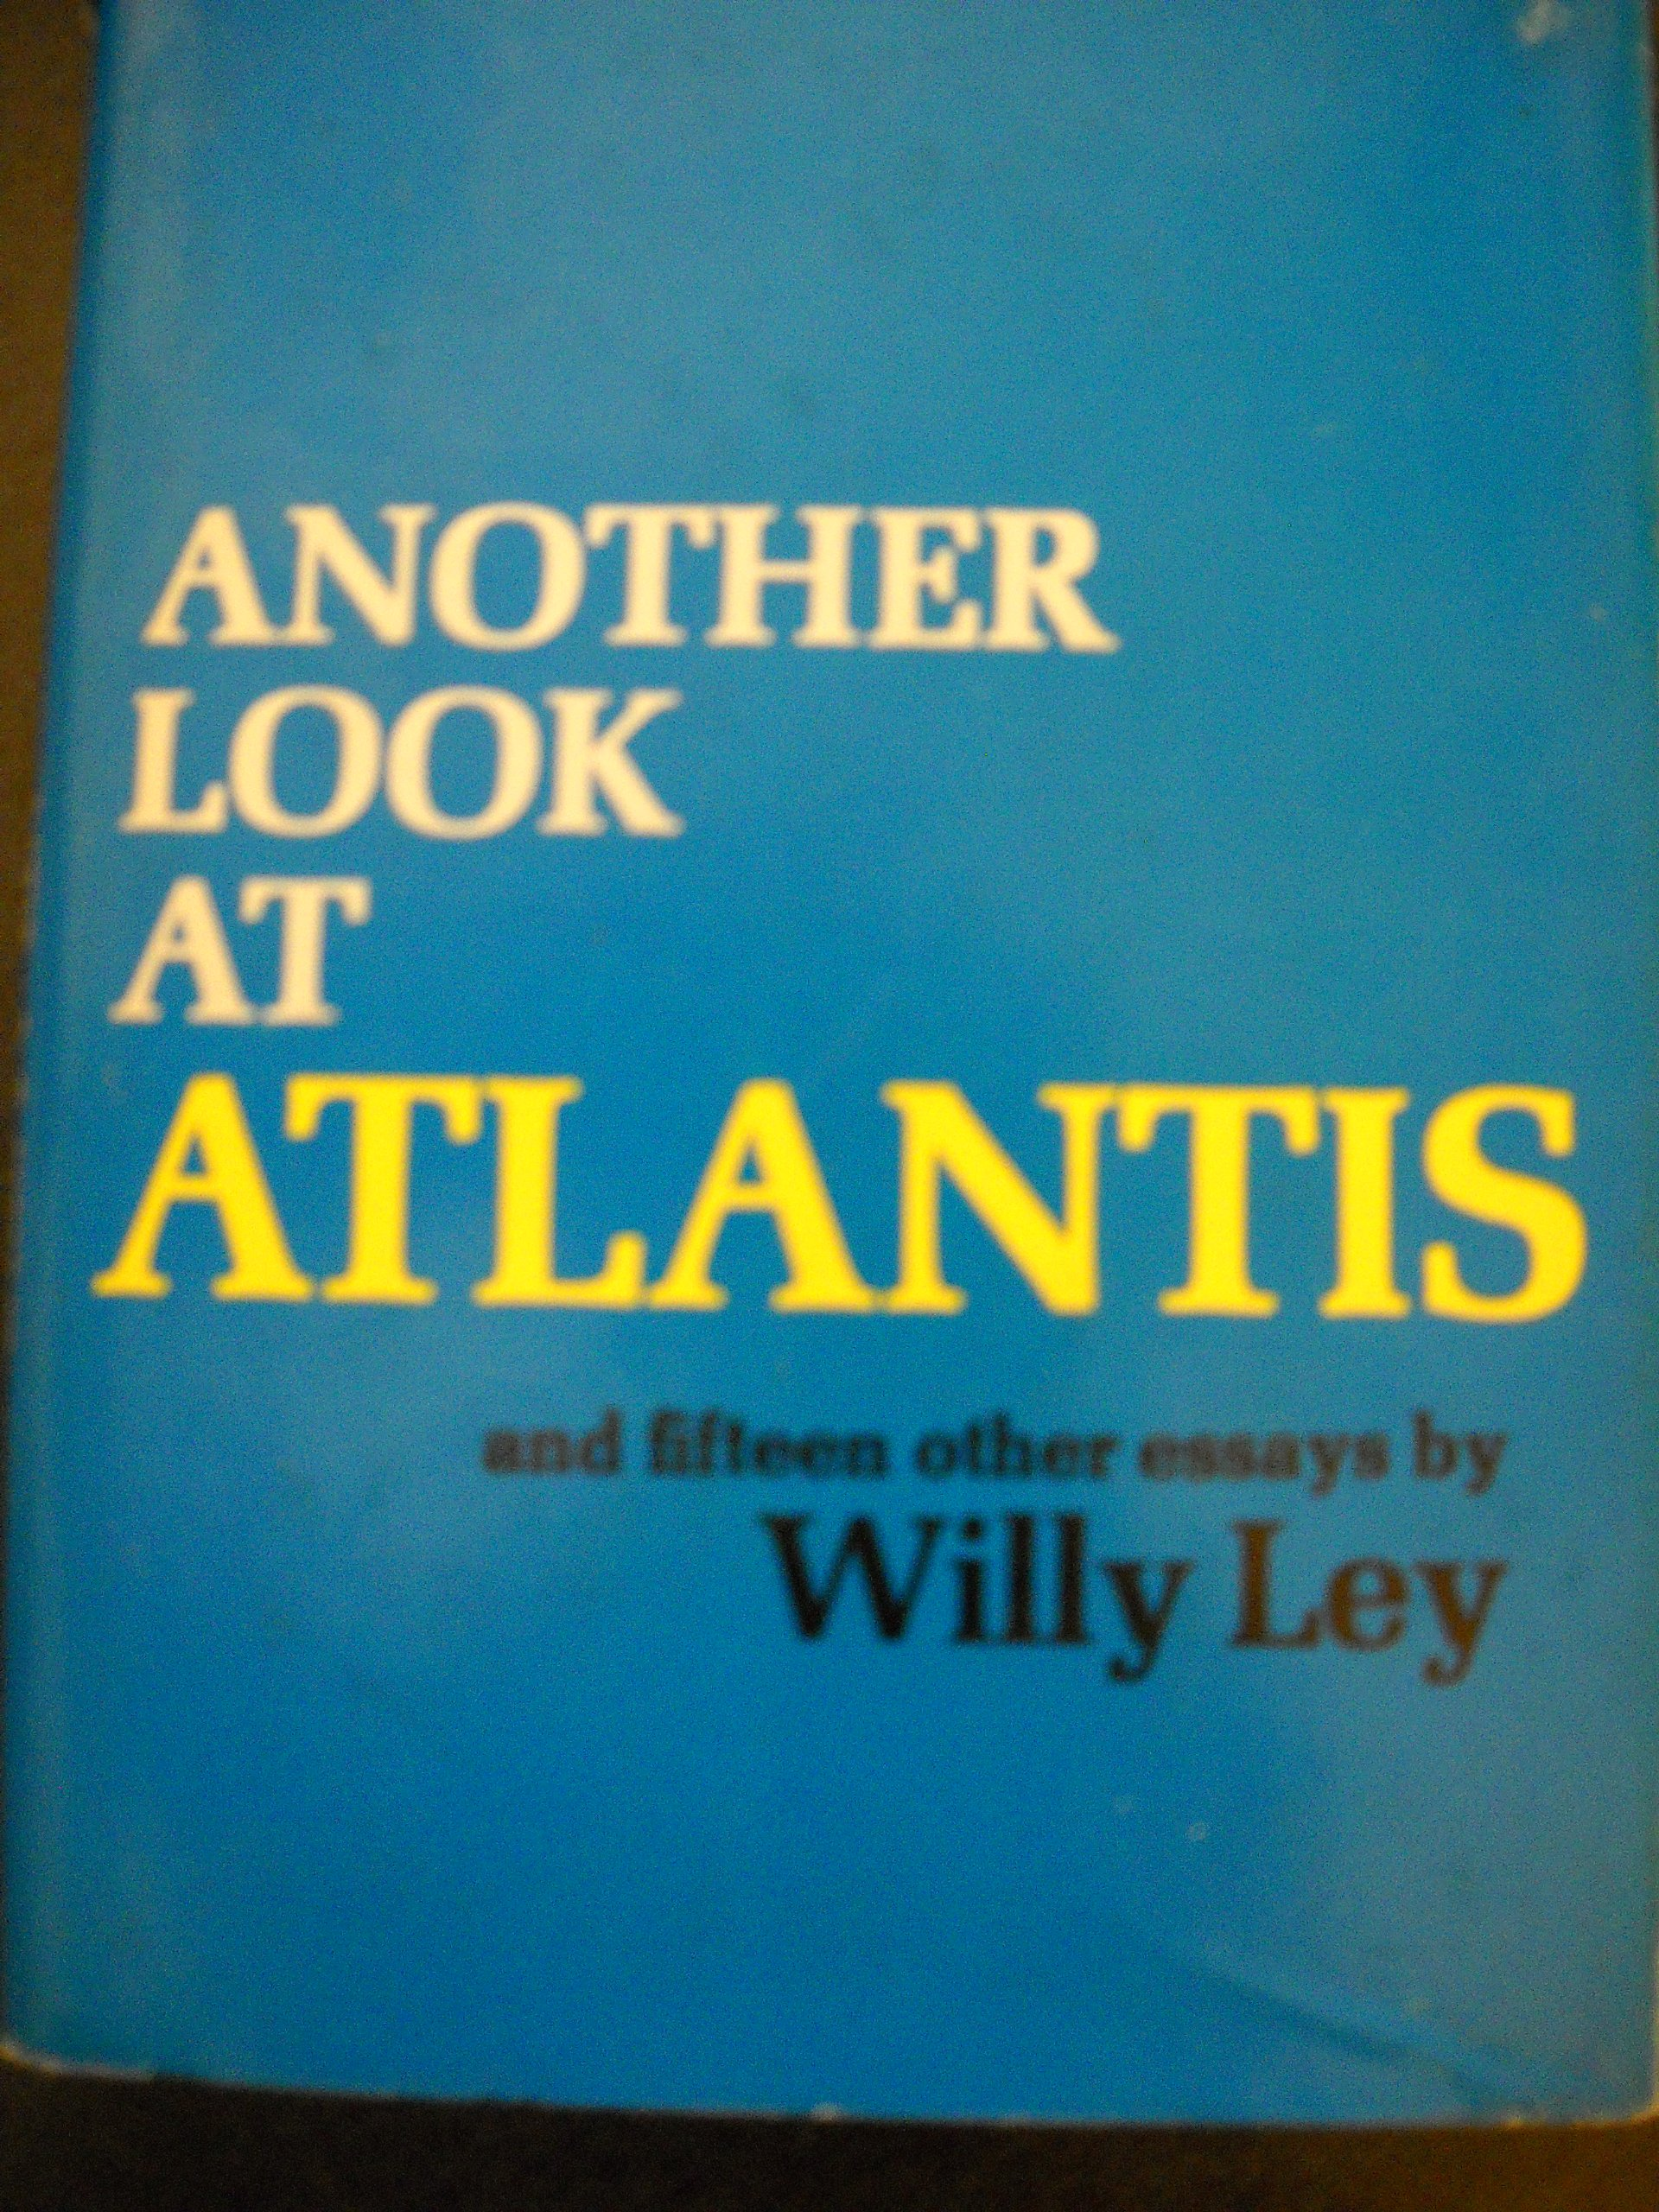 Another Look At Atlantis and Fifteen Other Essays